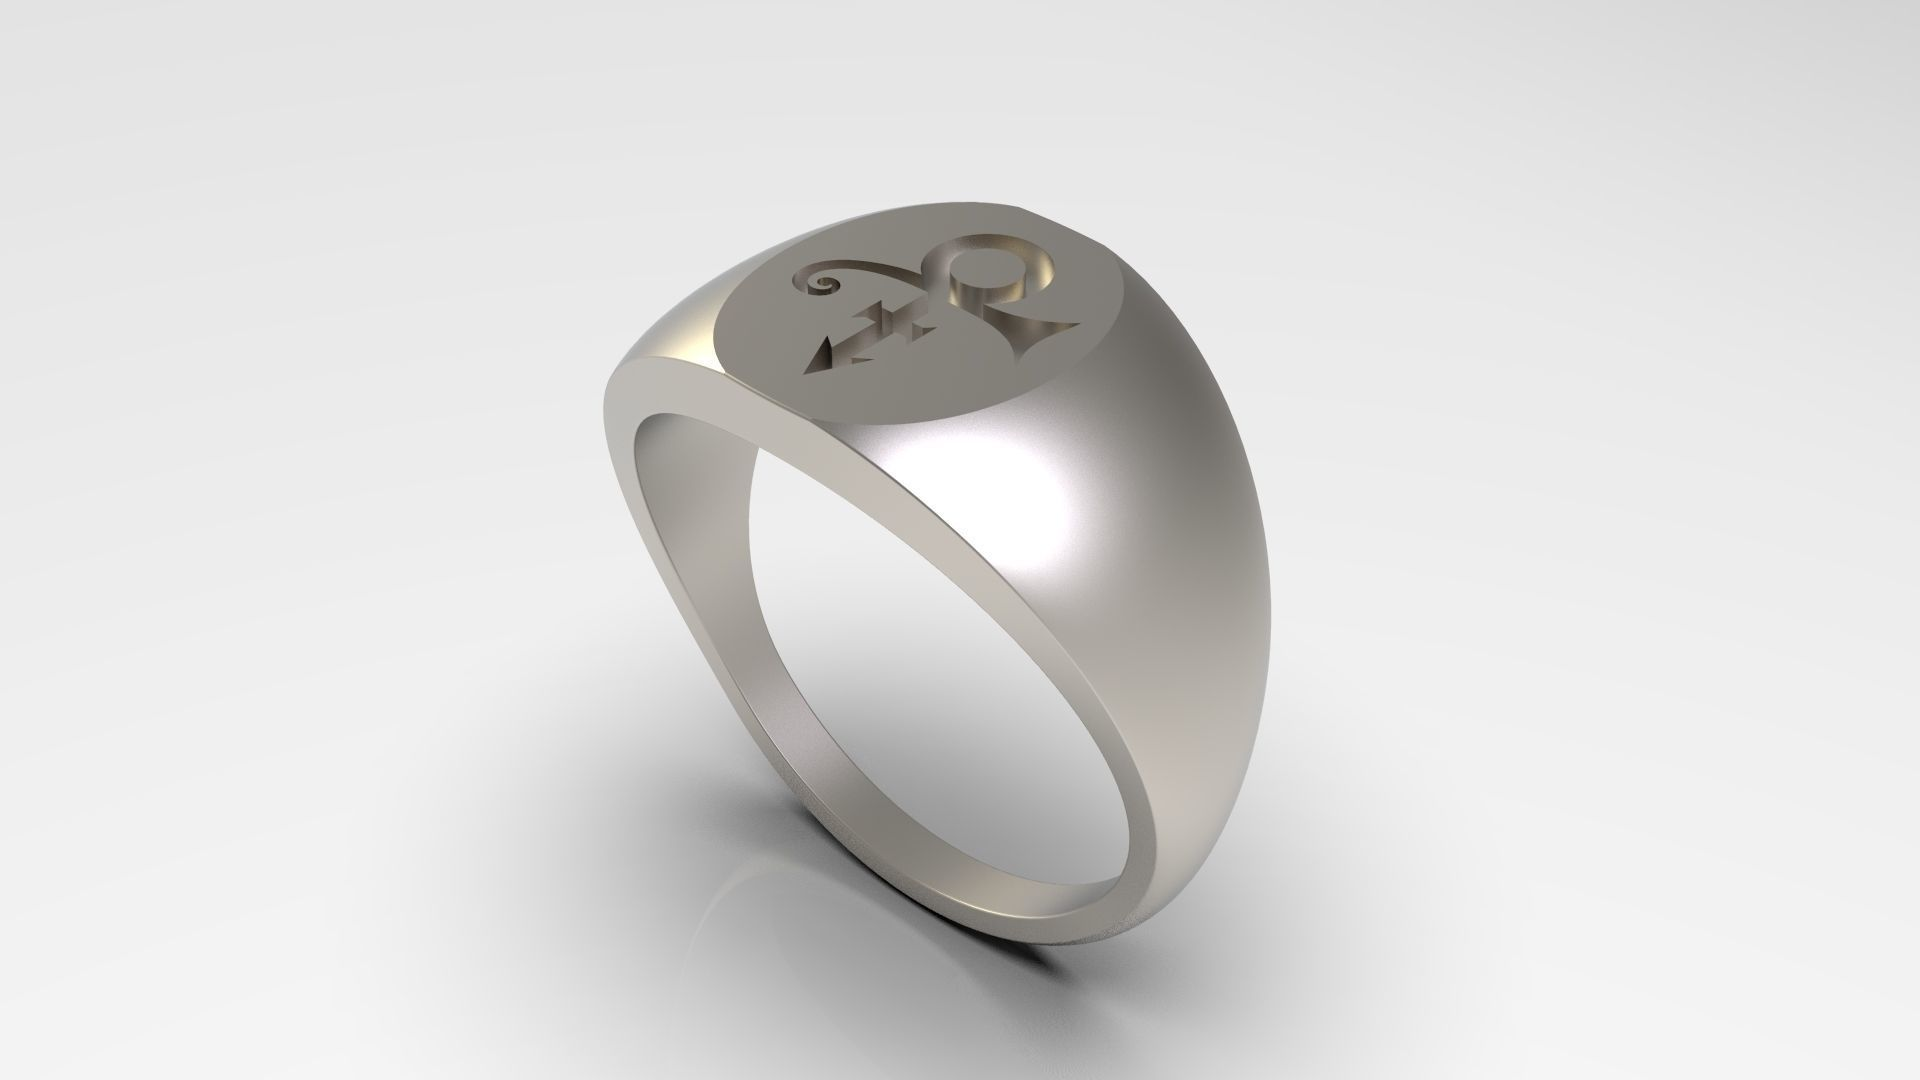 Prince Sott Large Love Signet Ring in US Size